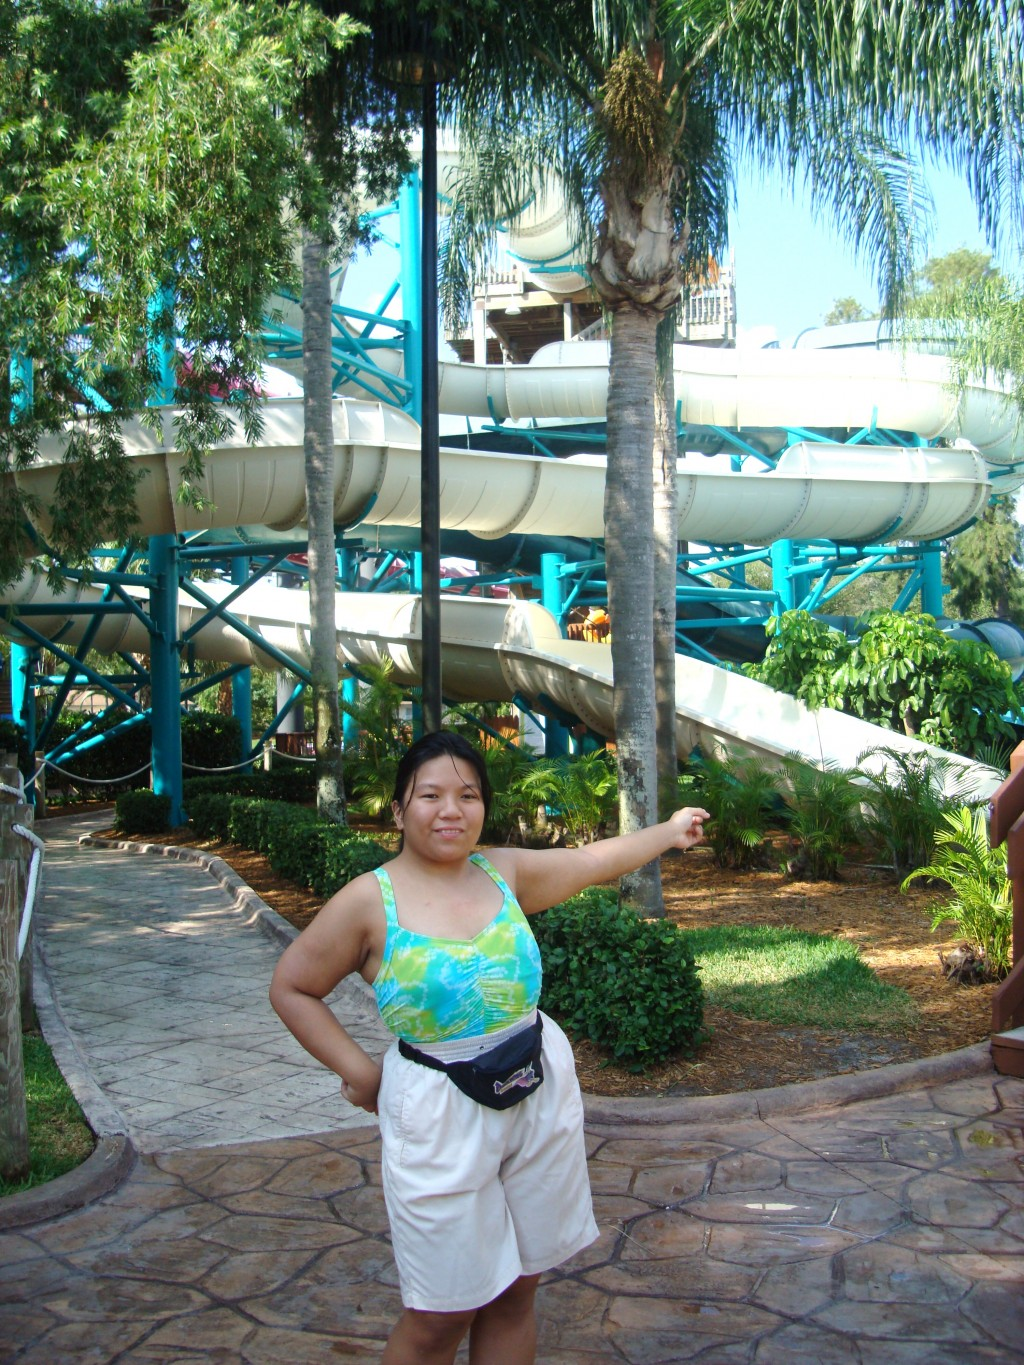 Adventure island water slides attractions of tampa bay s Busch gardens tampa water park